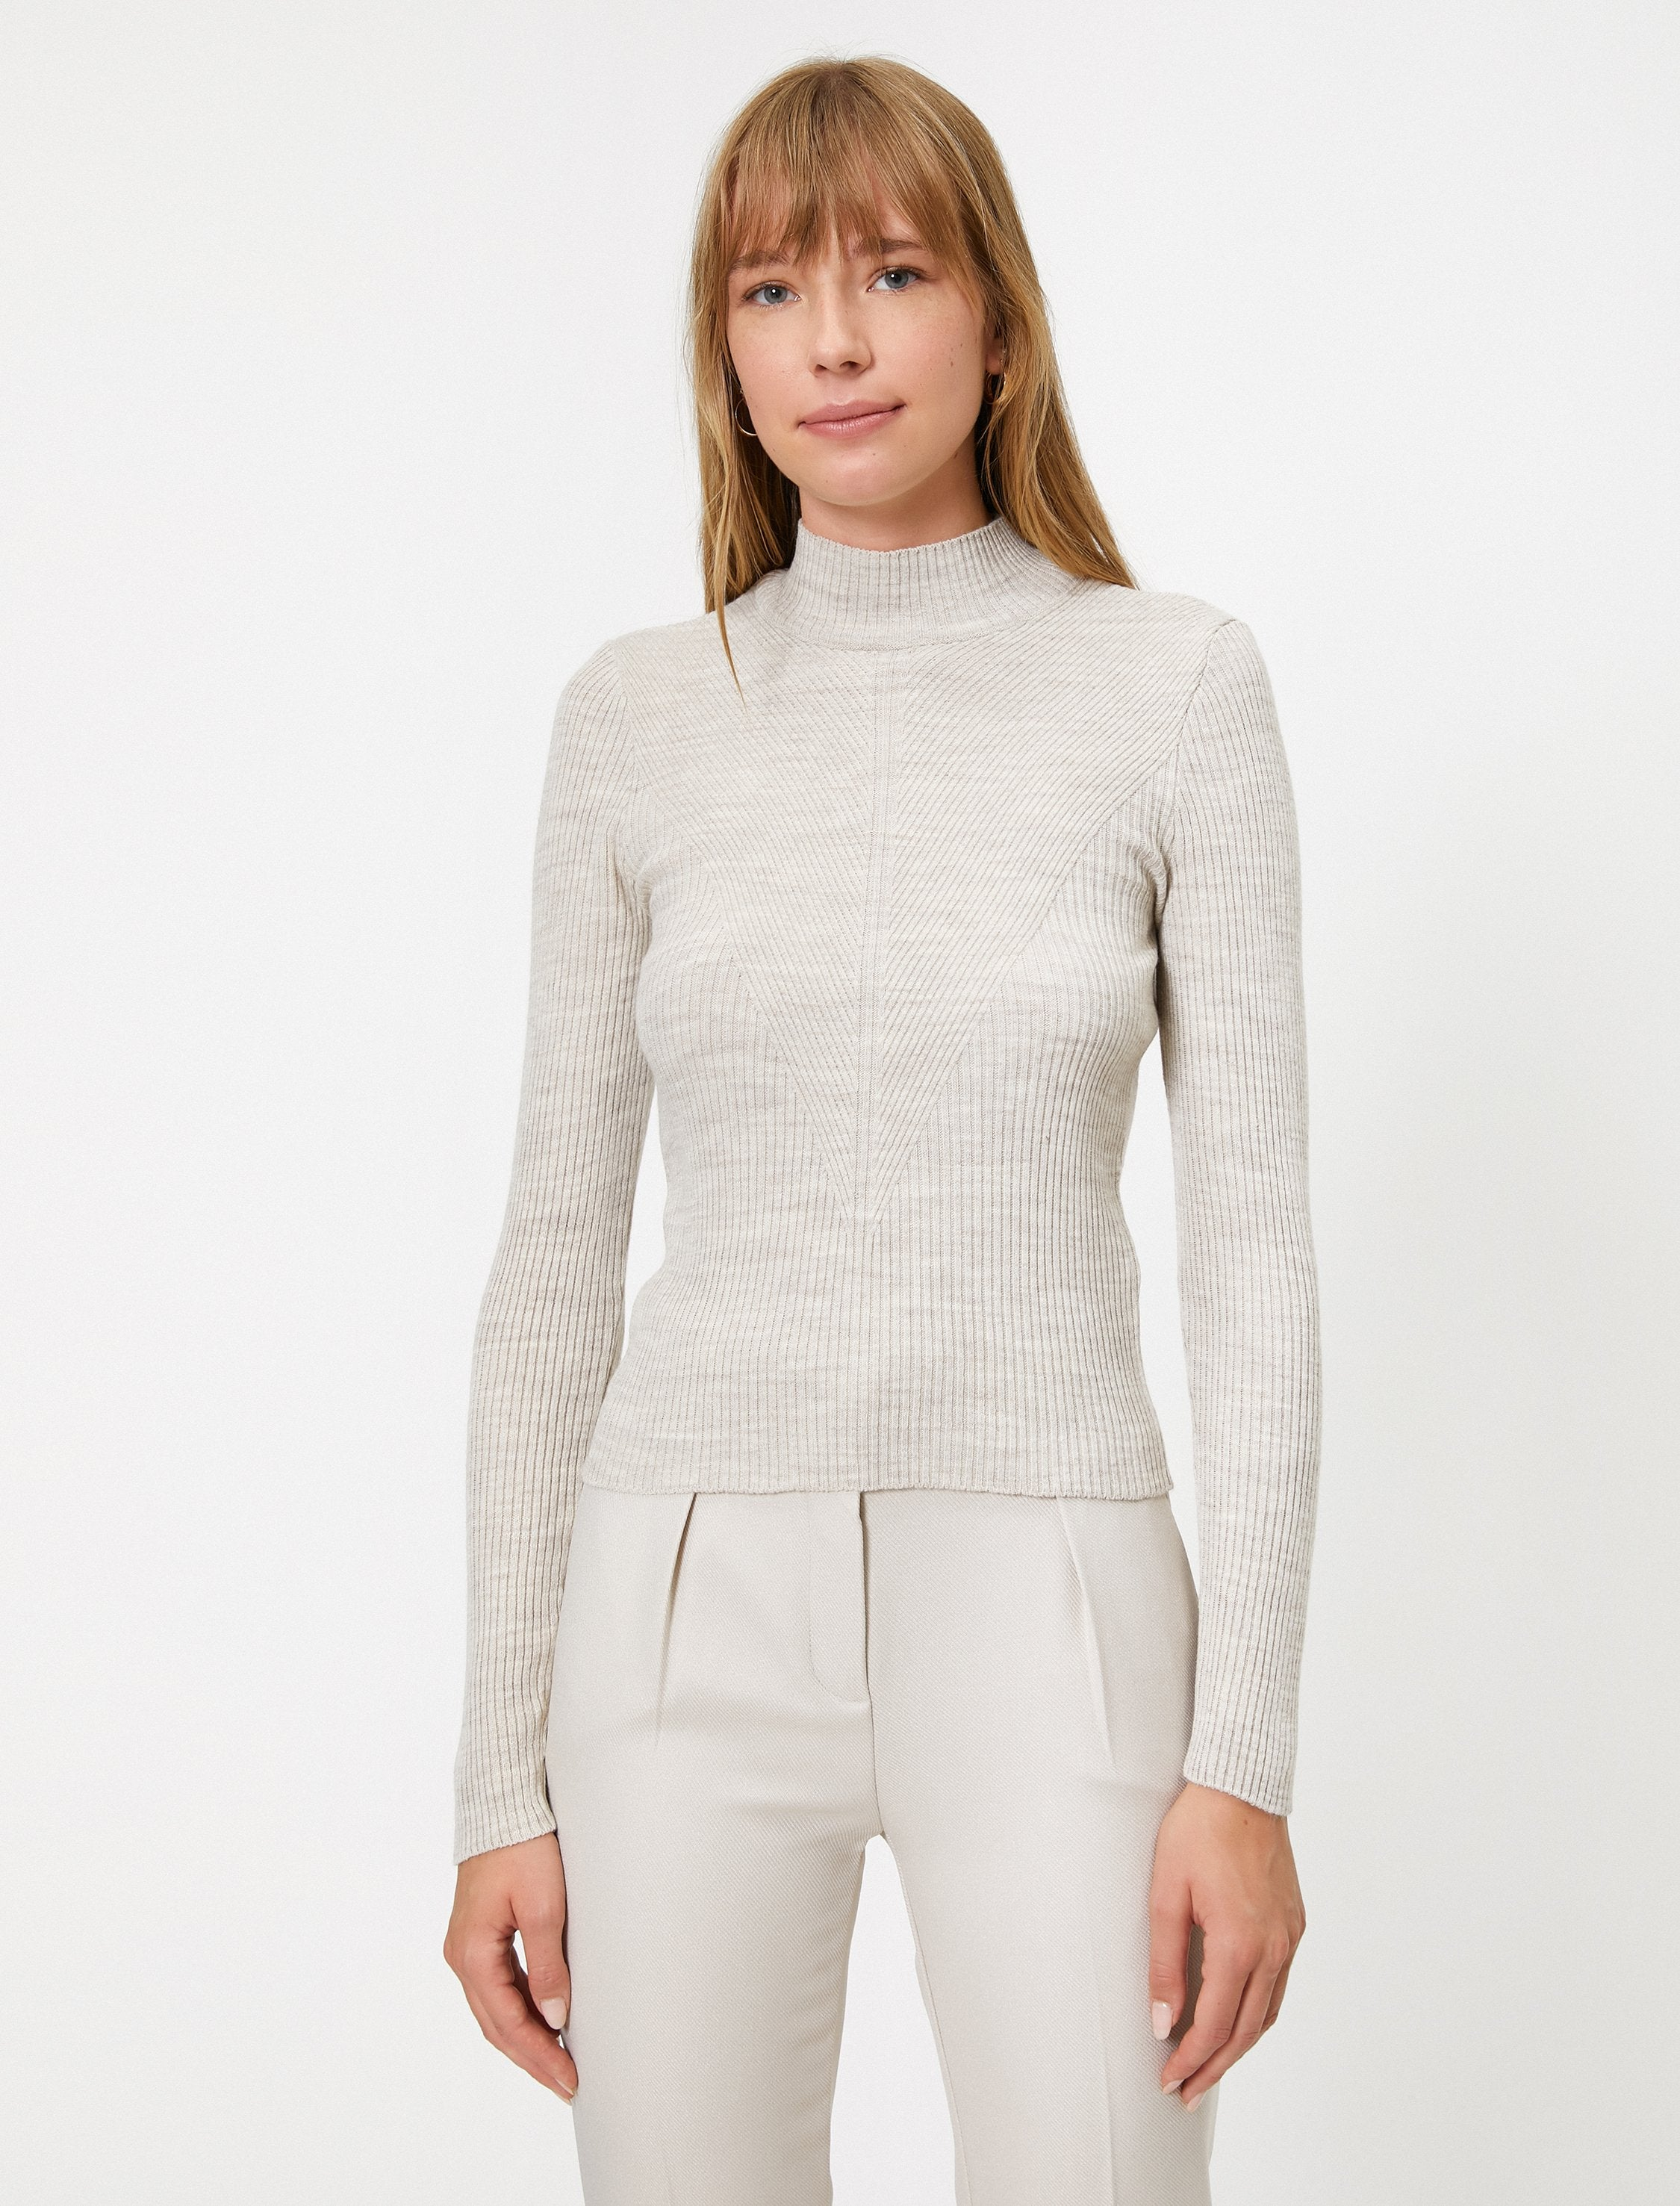 Fitted Mock Neck Sweater in Dune